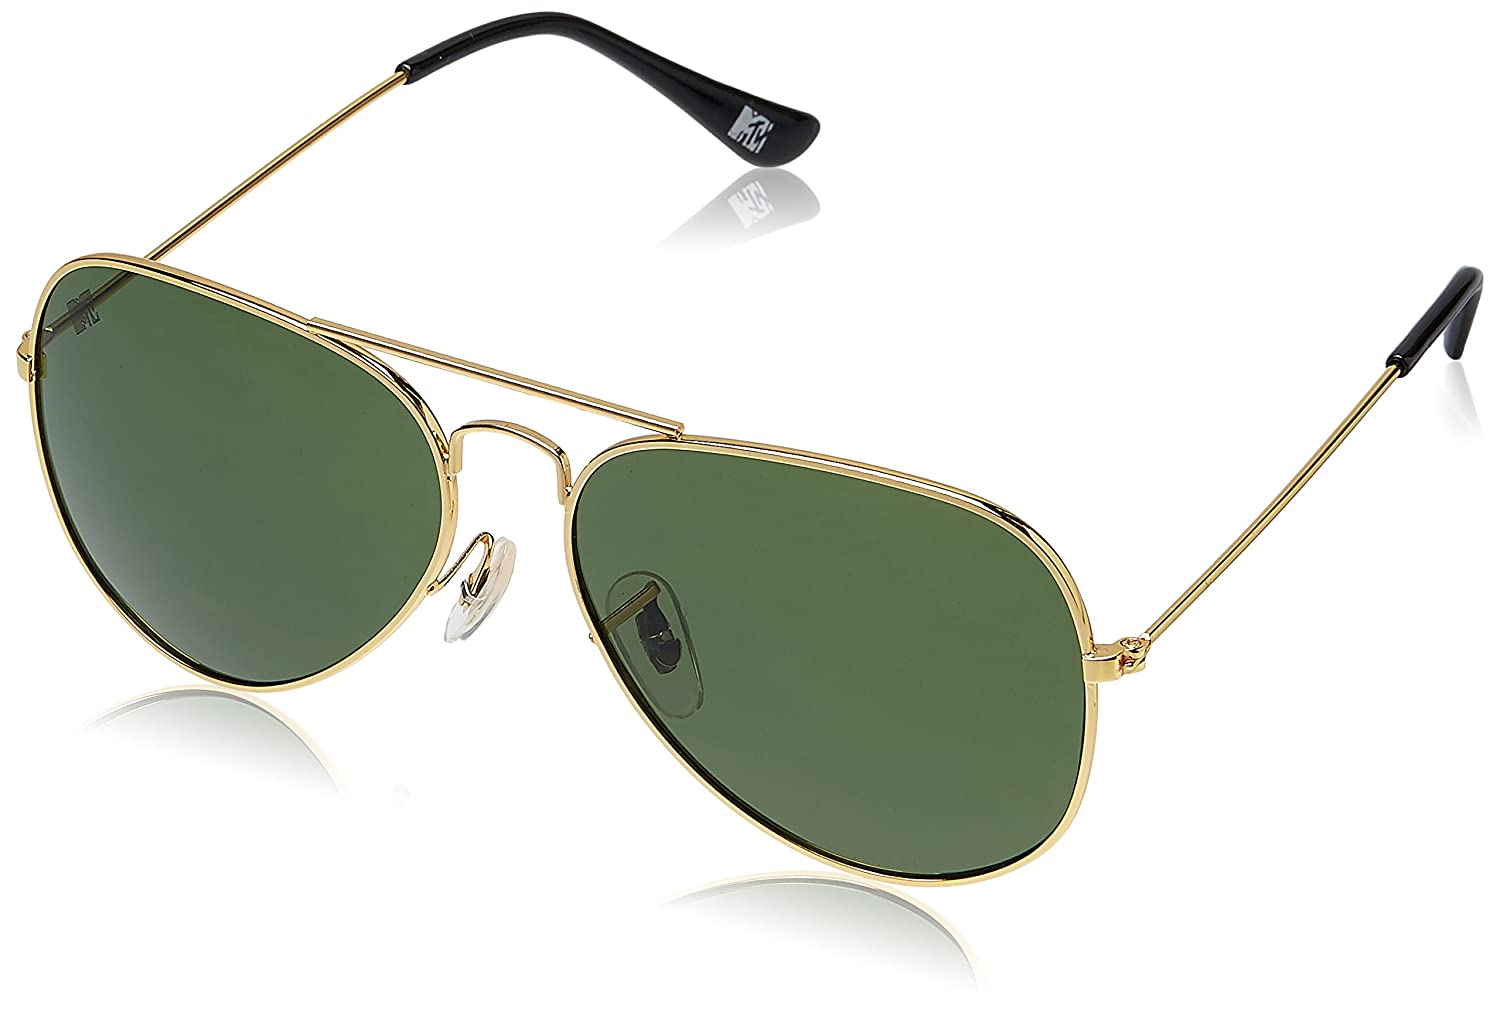 40-80% Off On Men's Fashion By Amazon | MTV Aviator Sunglass (Golden) (MTV-123|C9 58) @ Rs.799